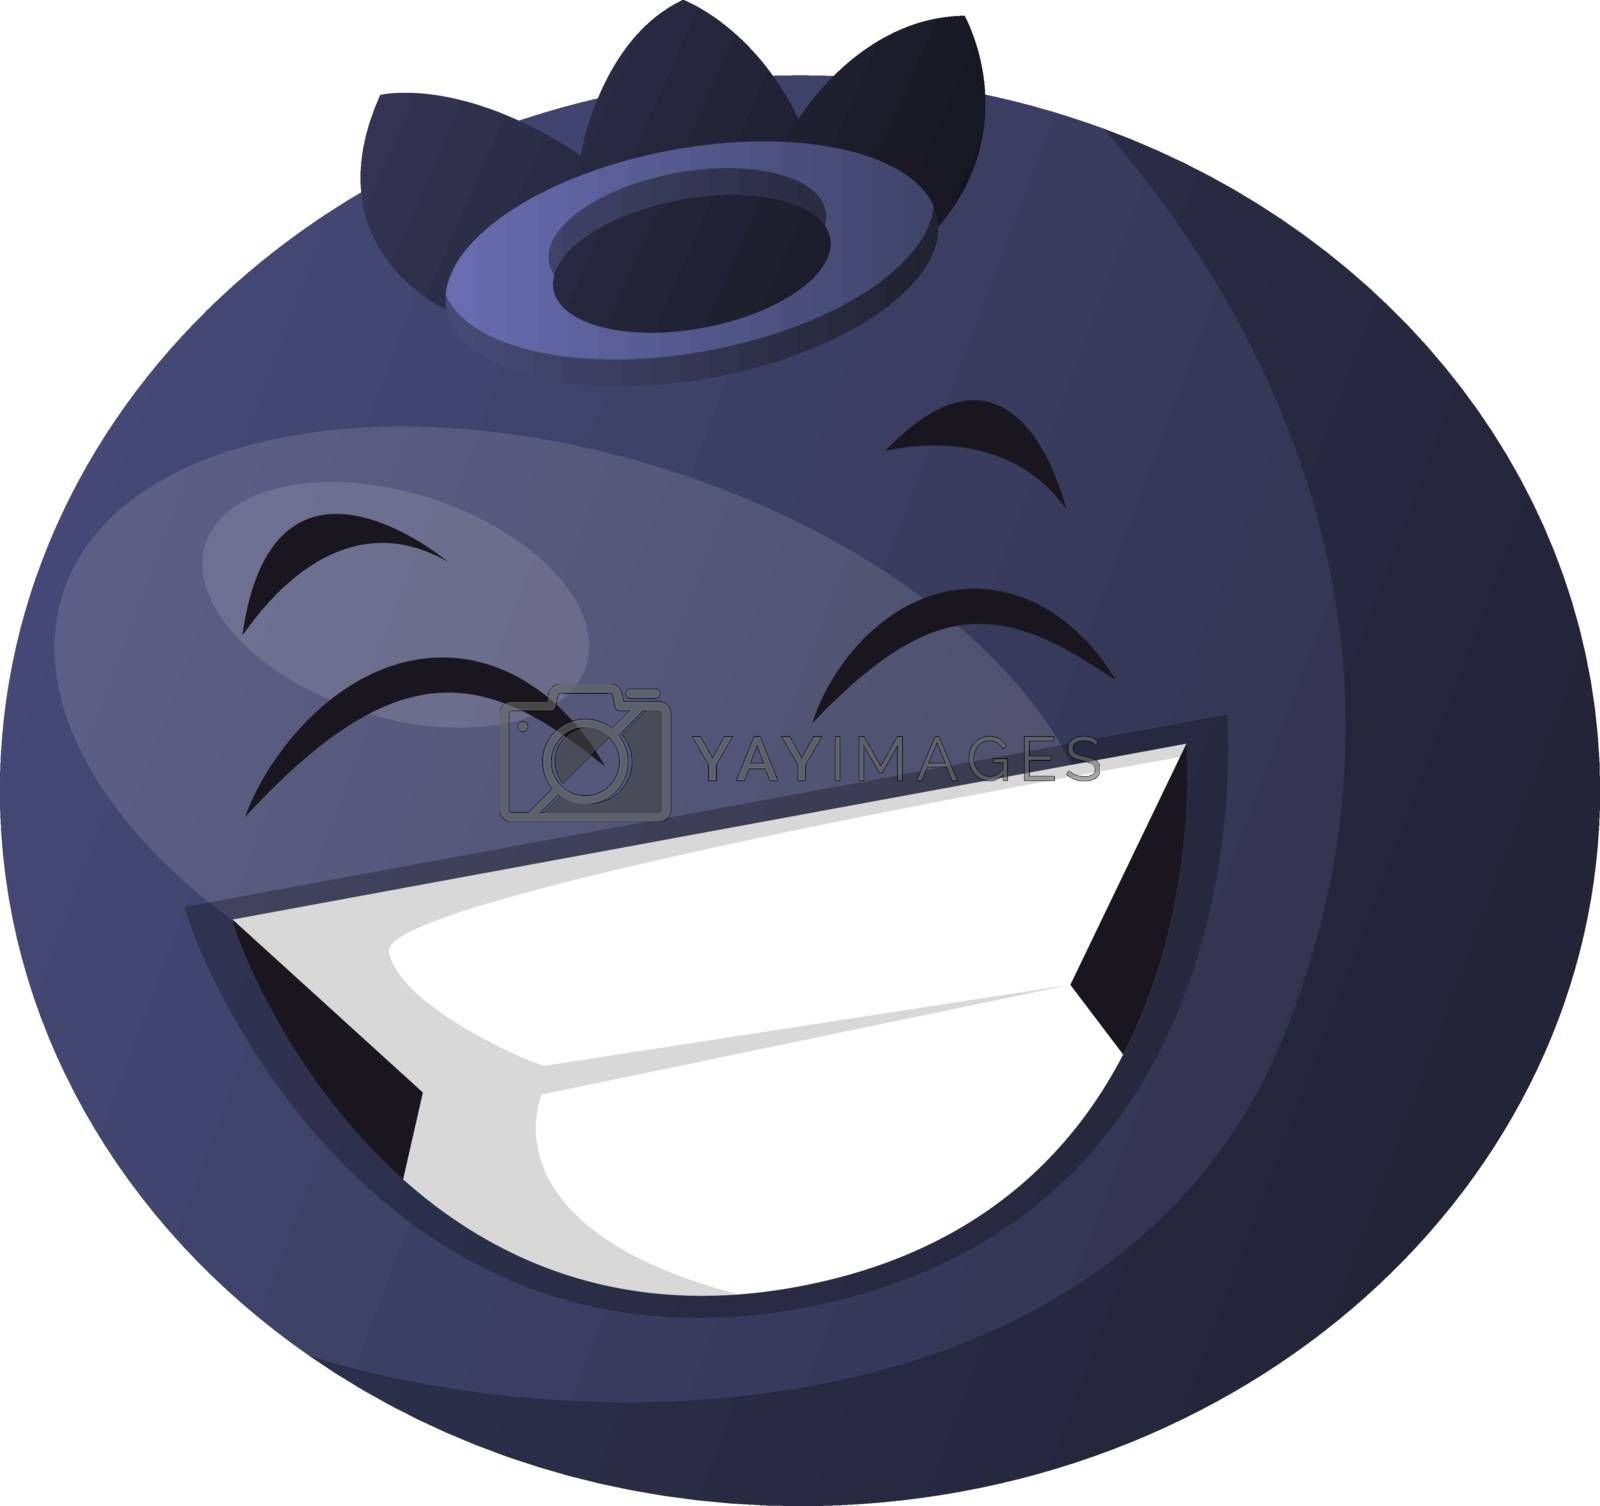 Royalty free image of Blueberry laughing illustration vector on white background by Morphart